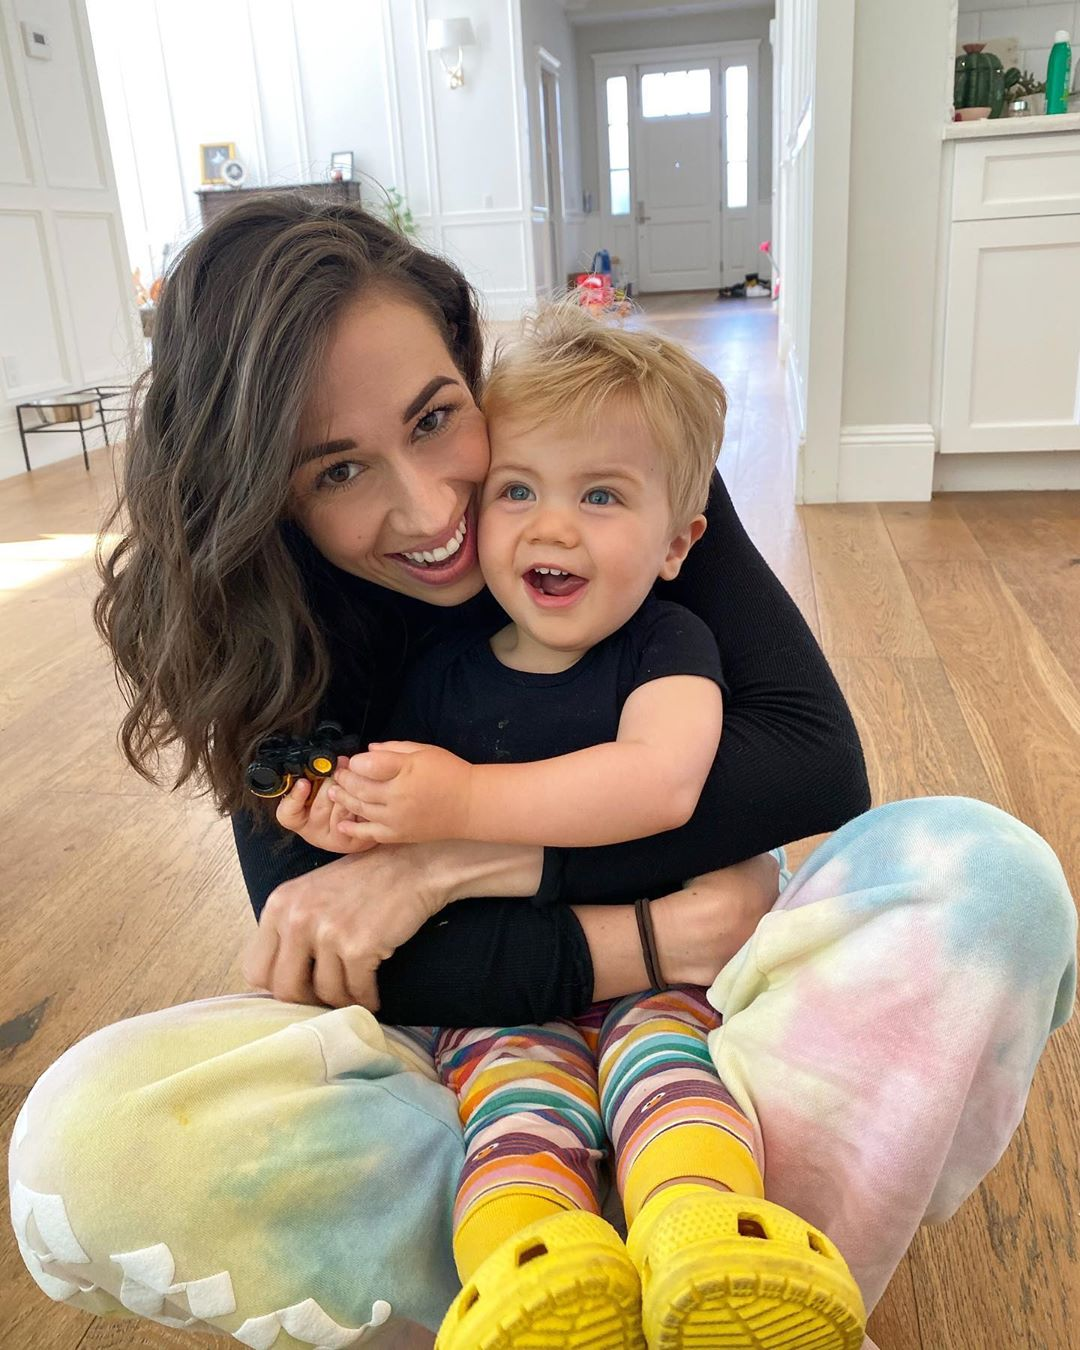 Colleen Ballinger and Other TikTok Users Are Splashing Water on Their Babies as Part of a New Trend